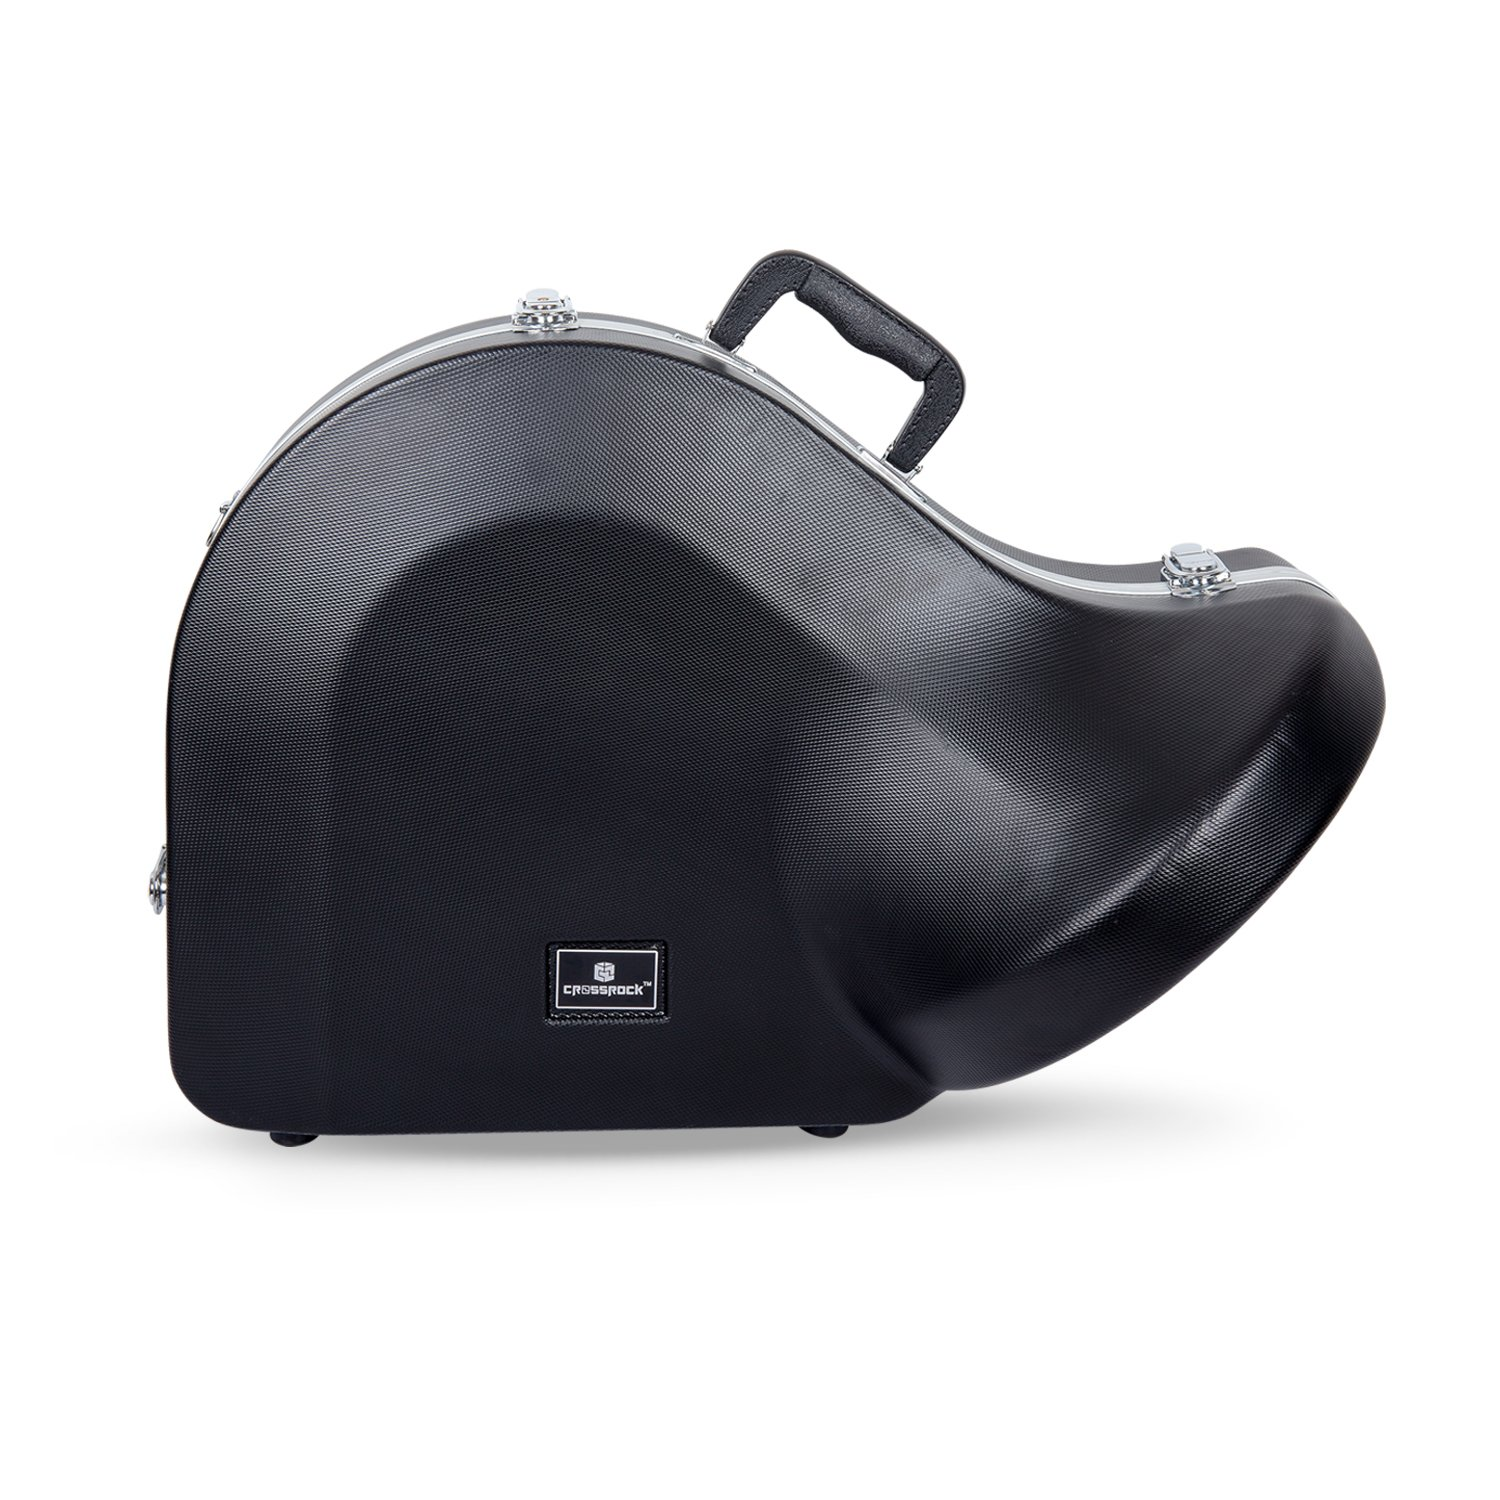 Crossrock CRA860FHBK French Horn, Contoured ABS Molded Hard Shell Case with Padded Strap in Black